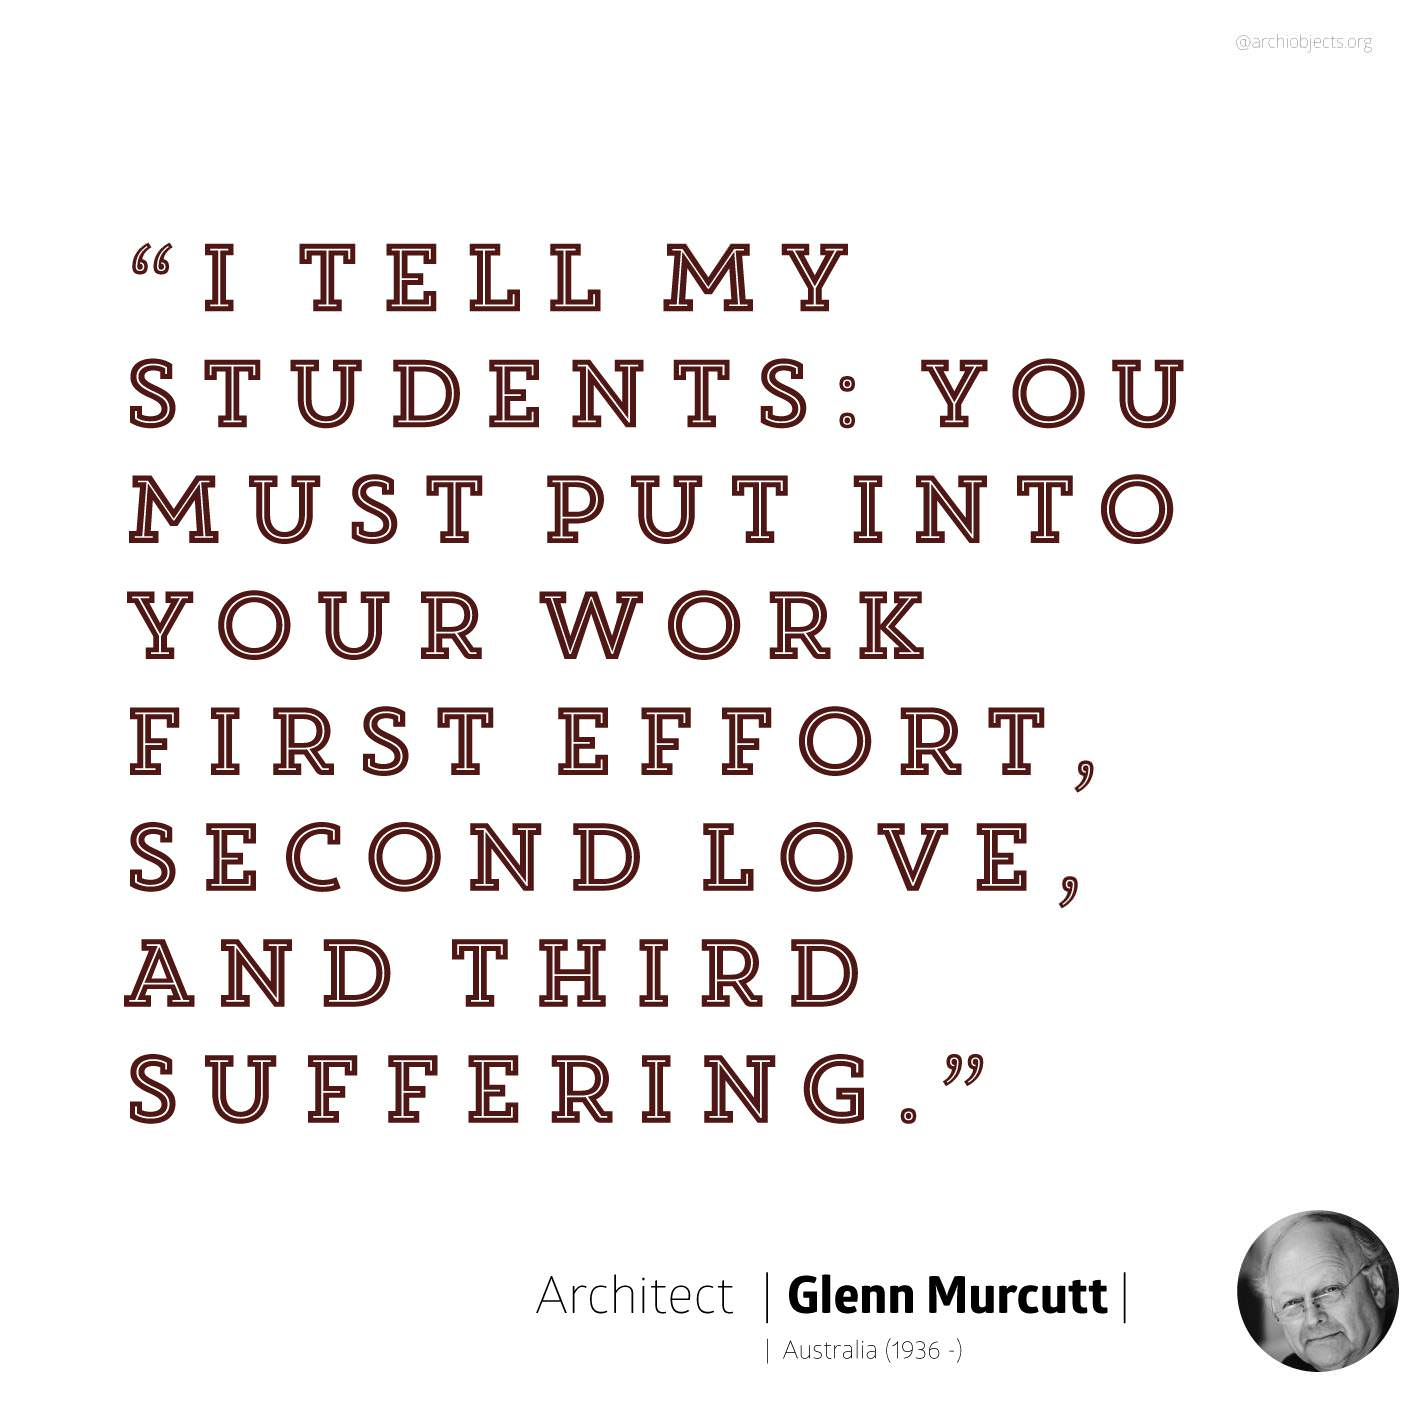 glenn murcutt quotes Architectural Quotes - Worth spreading Architects' voice